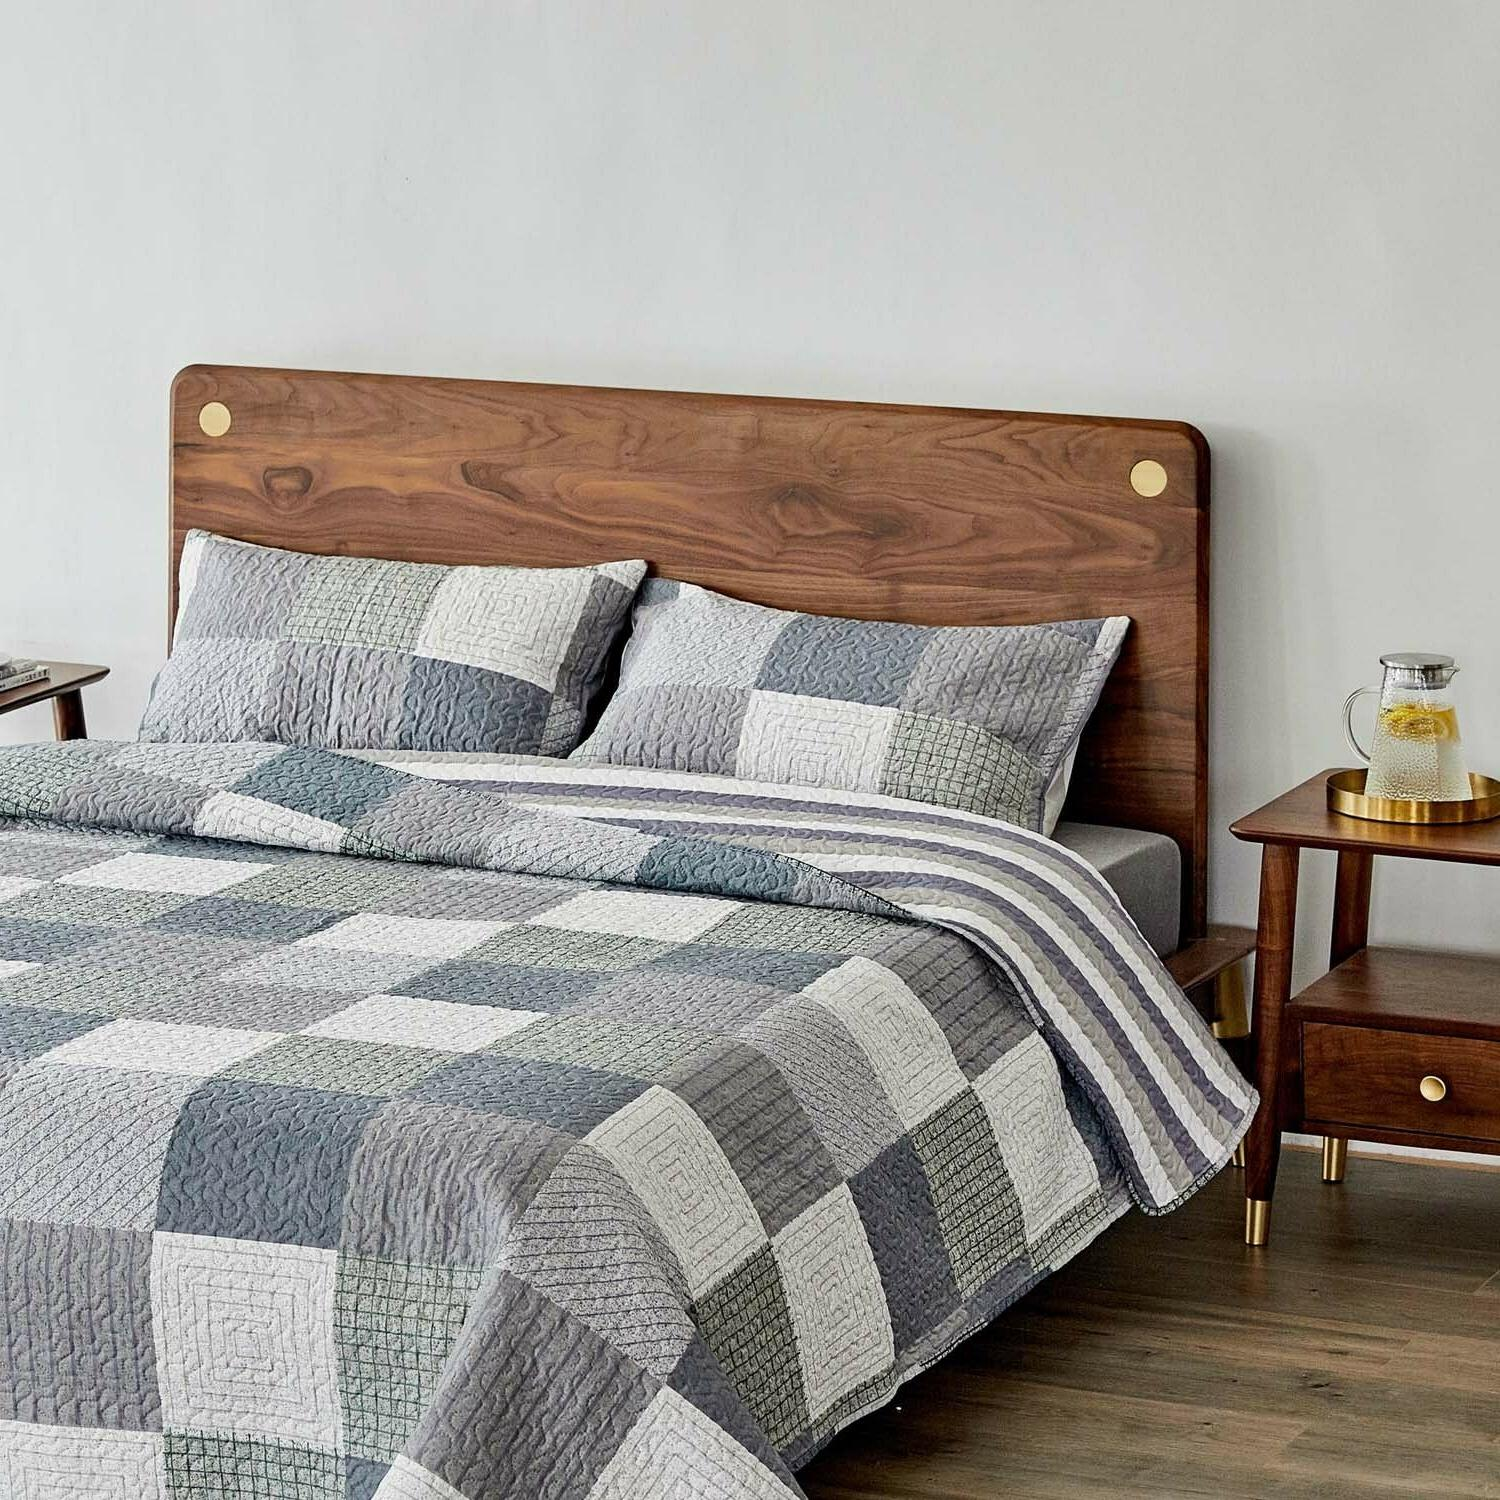 Quilt Cotton Soft Coverlet for All Season